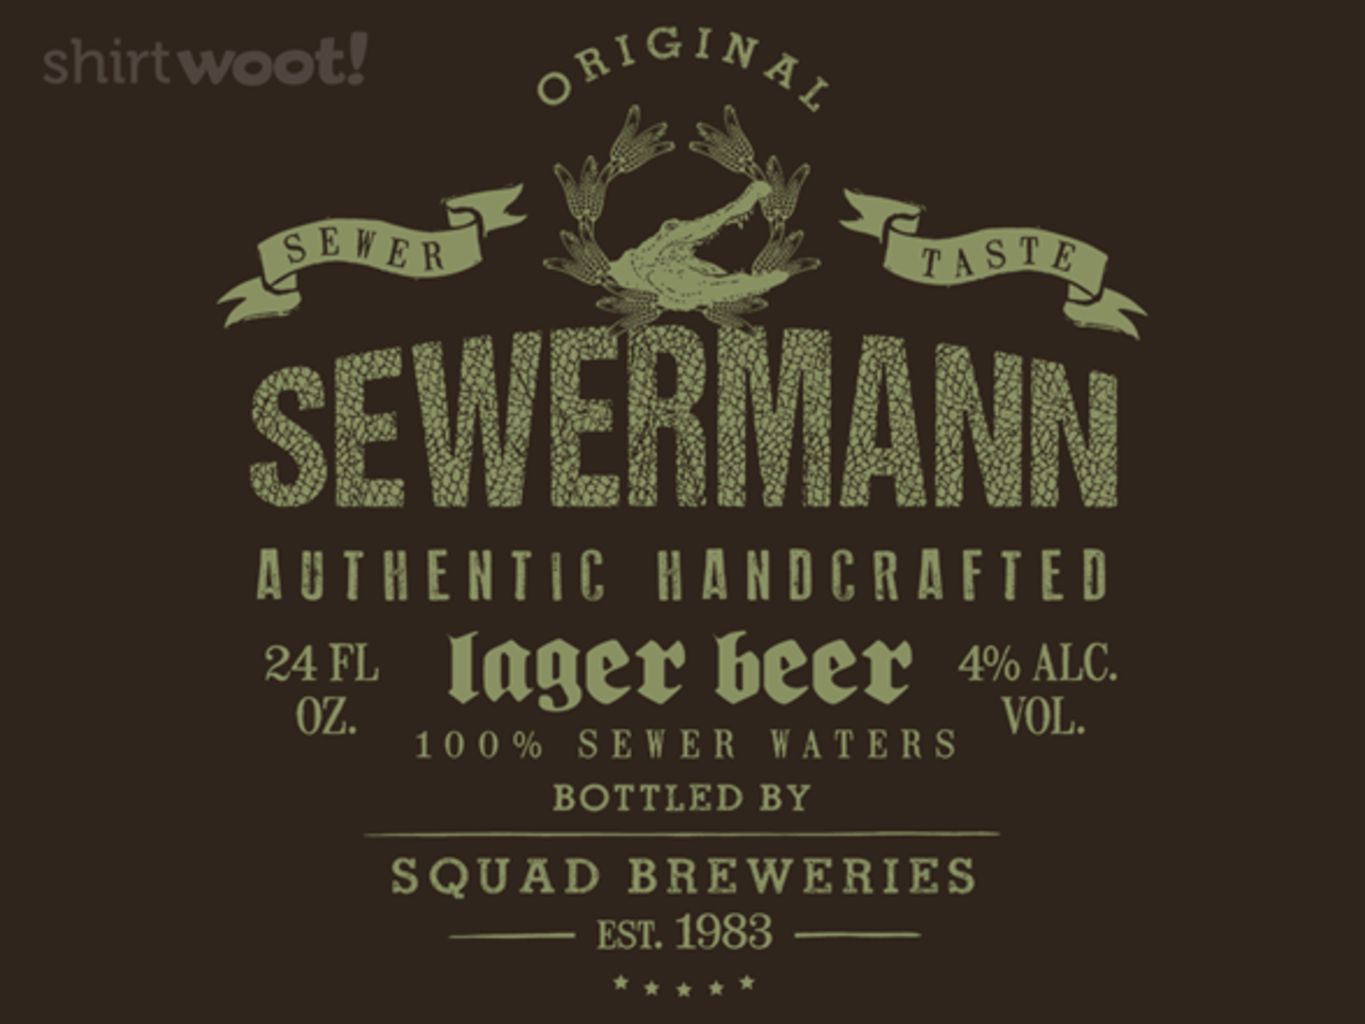 Woot!: Sewermann - Squad Breweries - $7.00 + $5 standard shipping